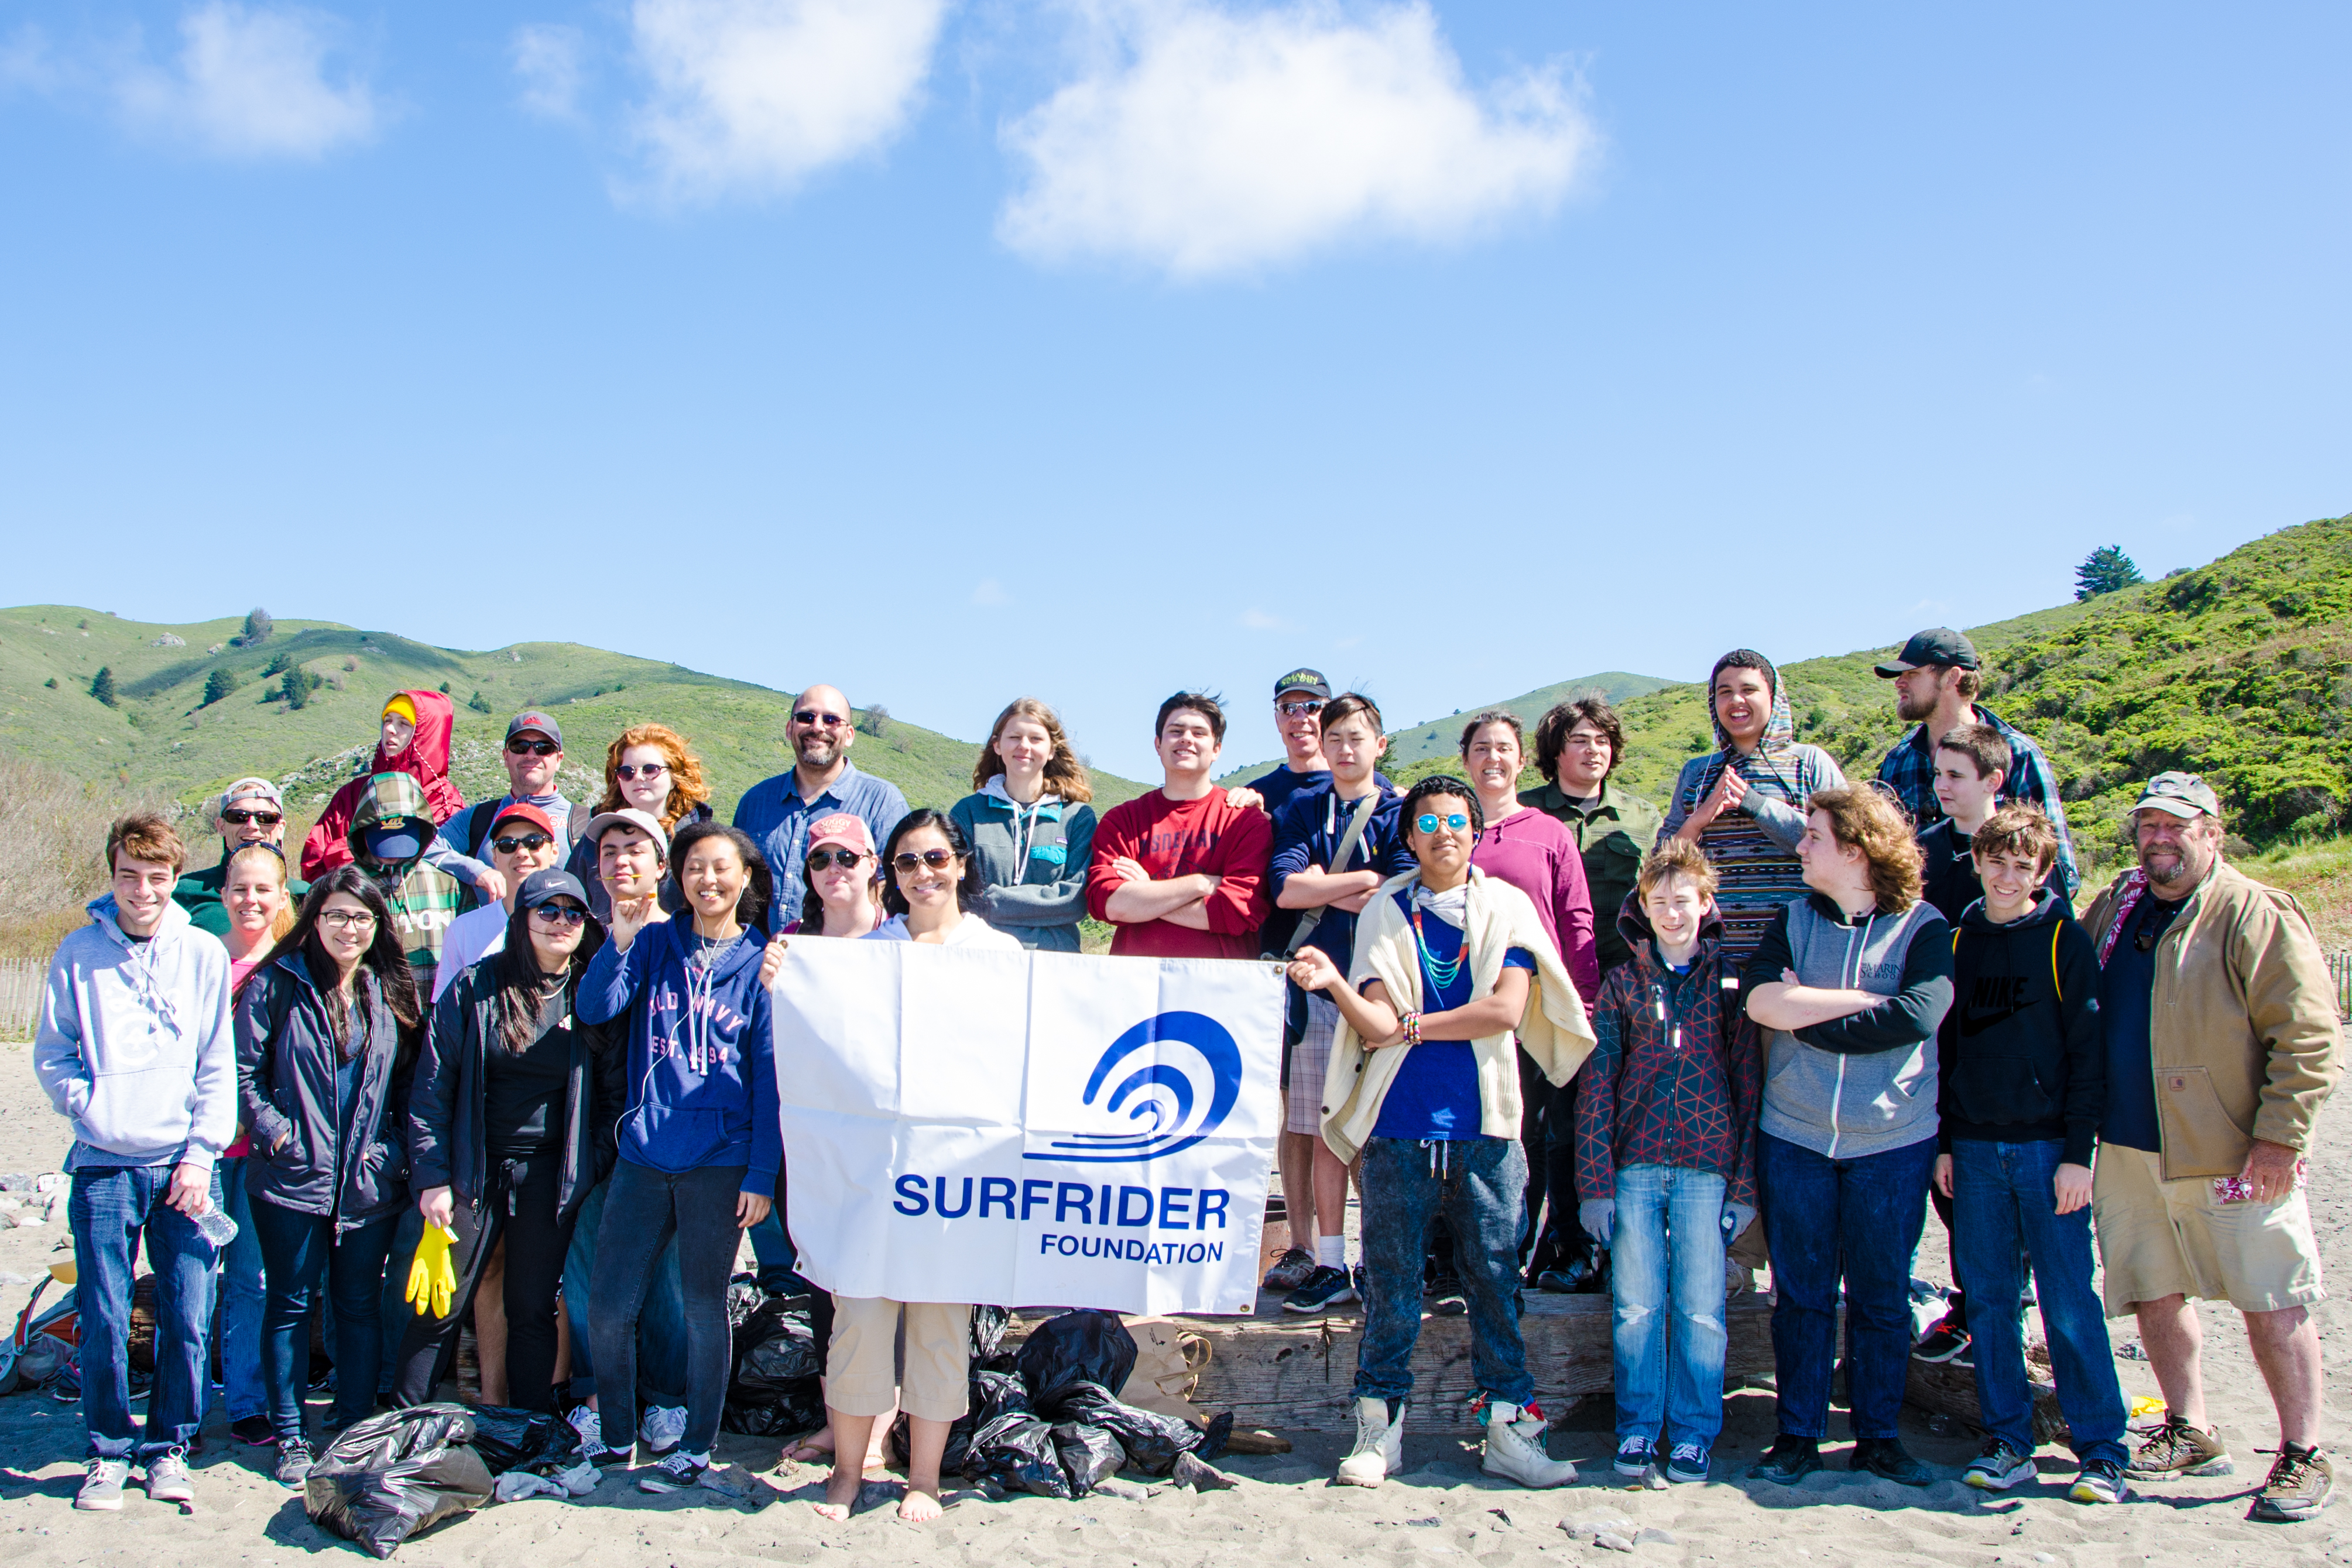 CC Day of Service 2016 Coastal Cleanup with Surfrider Foundation (51).jpg